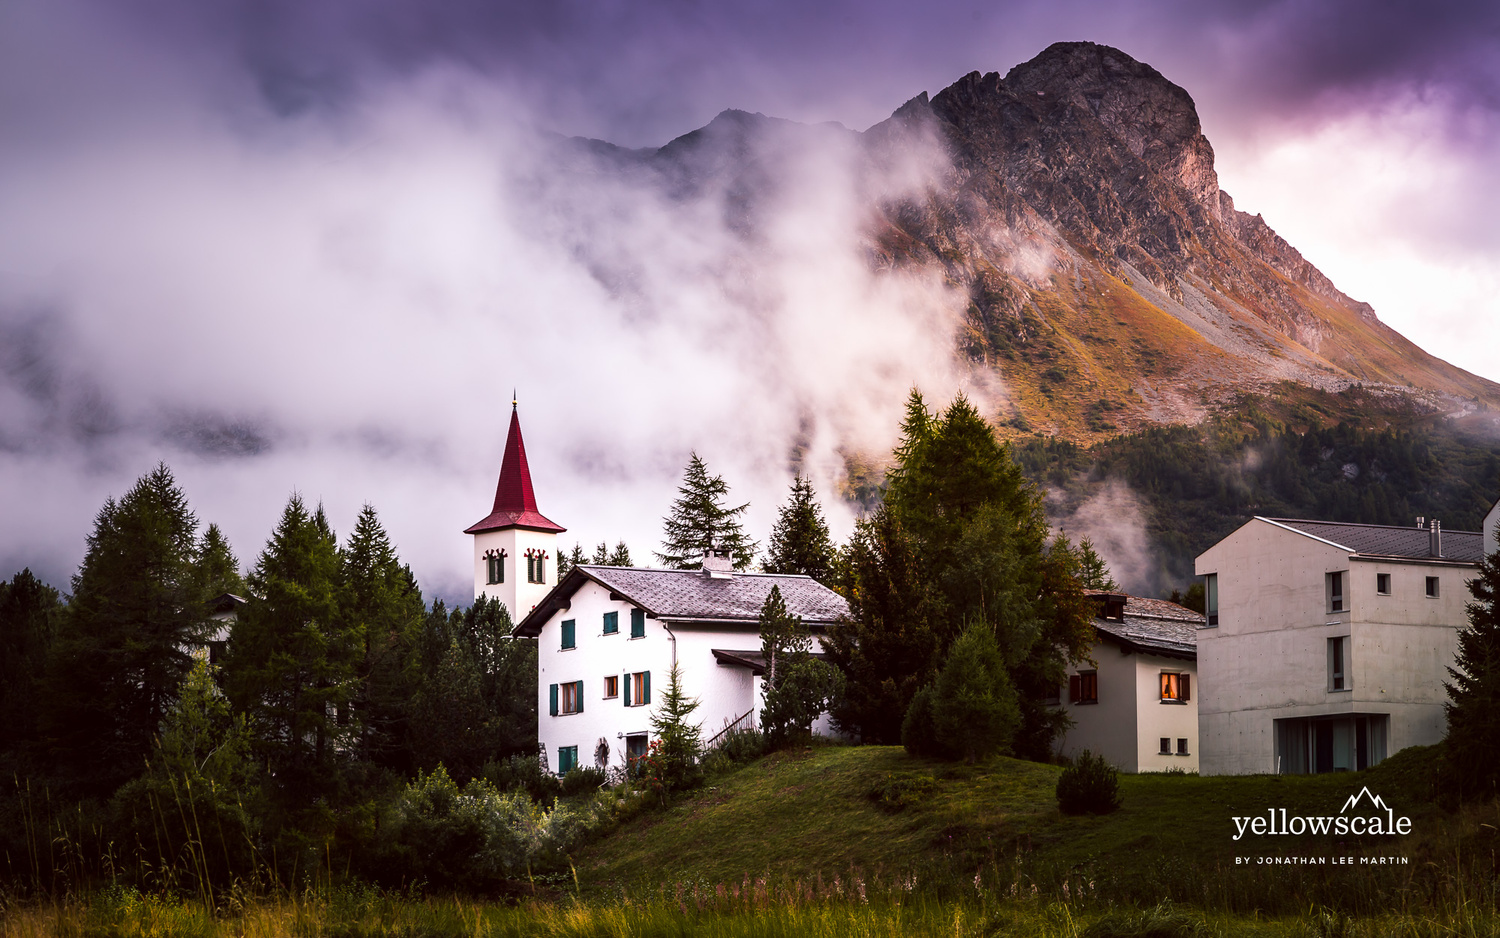 Church under the Mountain by Jonathan Lee Martin